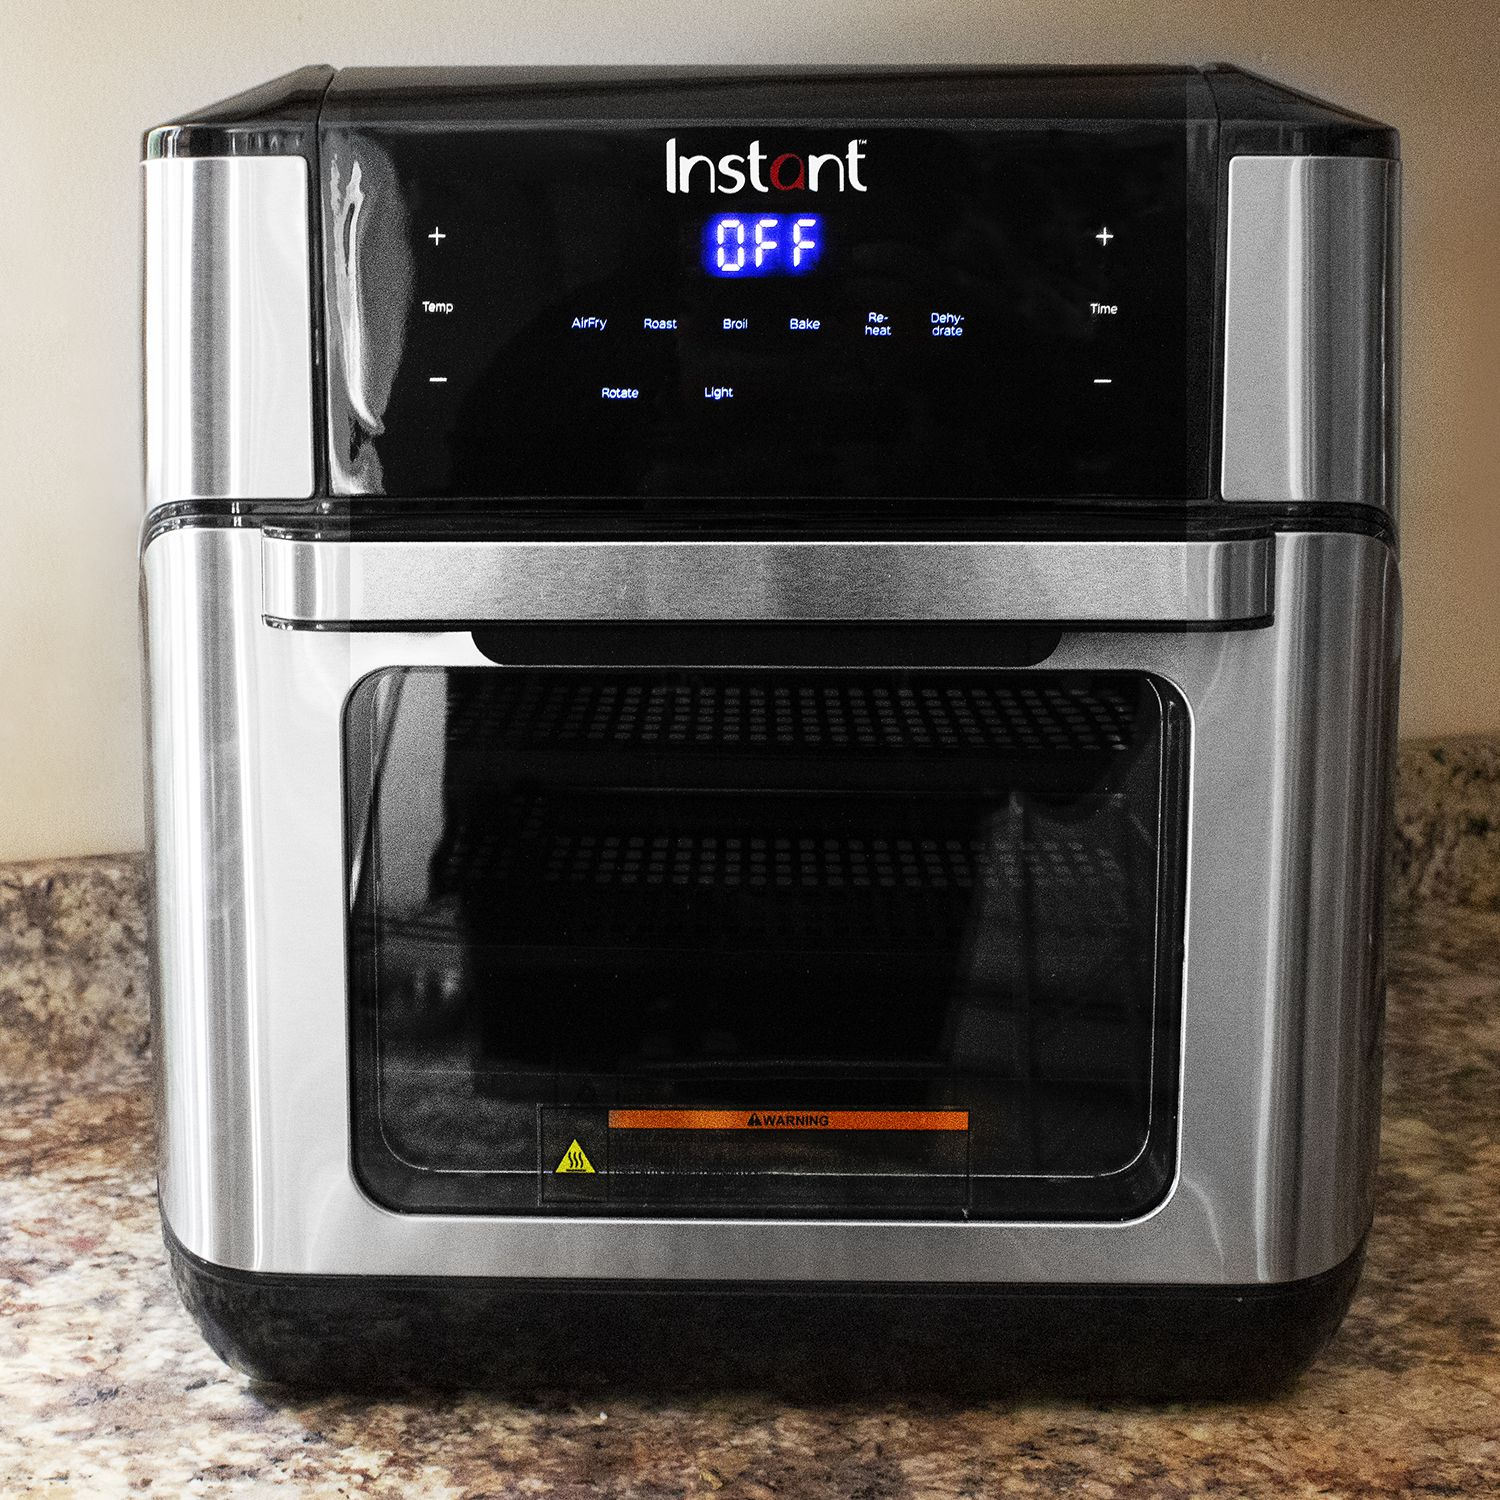 Instant Vortex Plus 7 In 1 Air Fryer Oven Review A Kitchen Workhorse